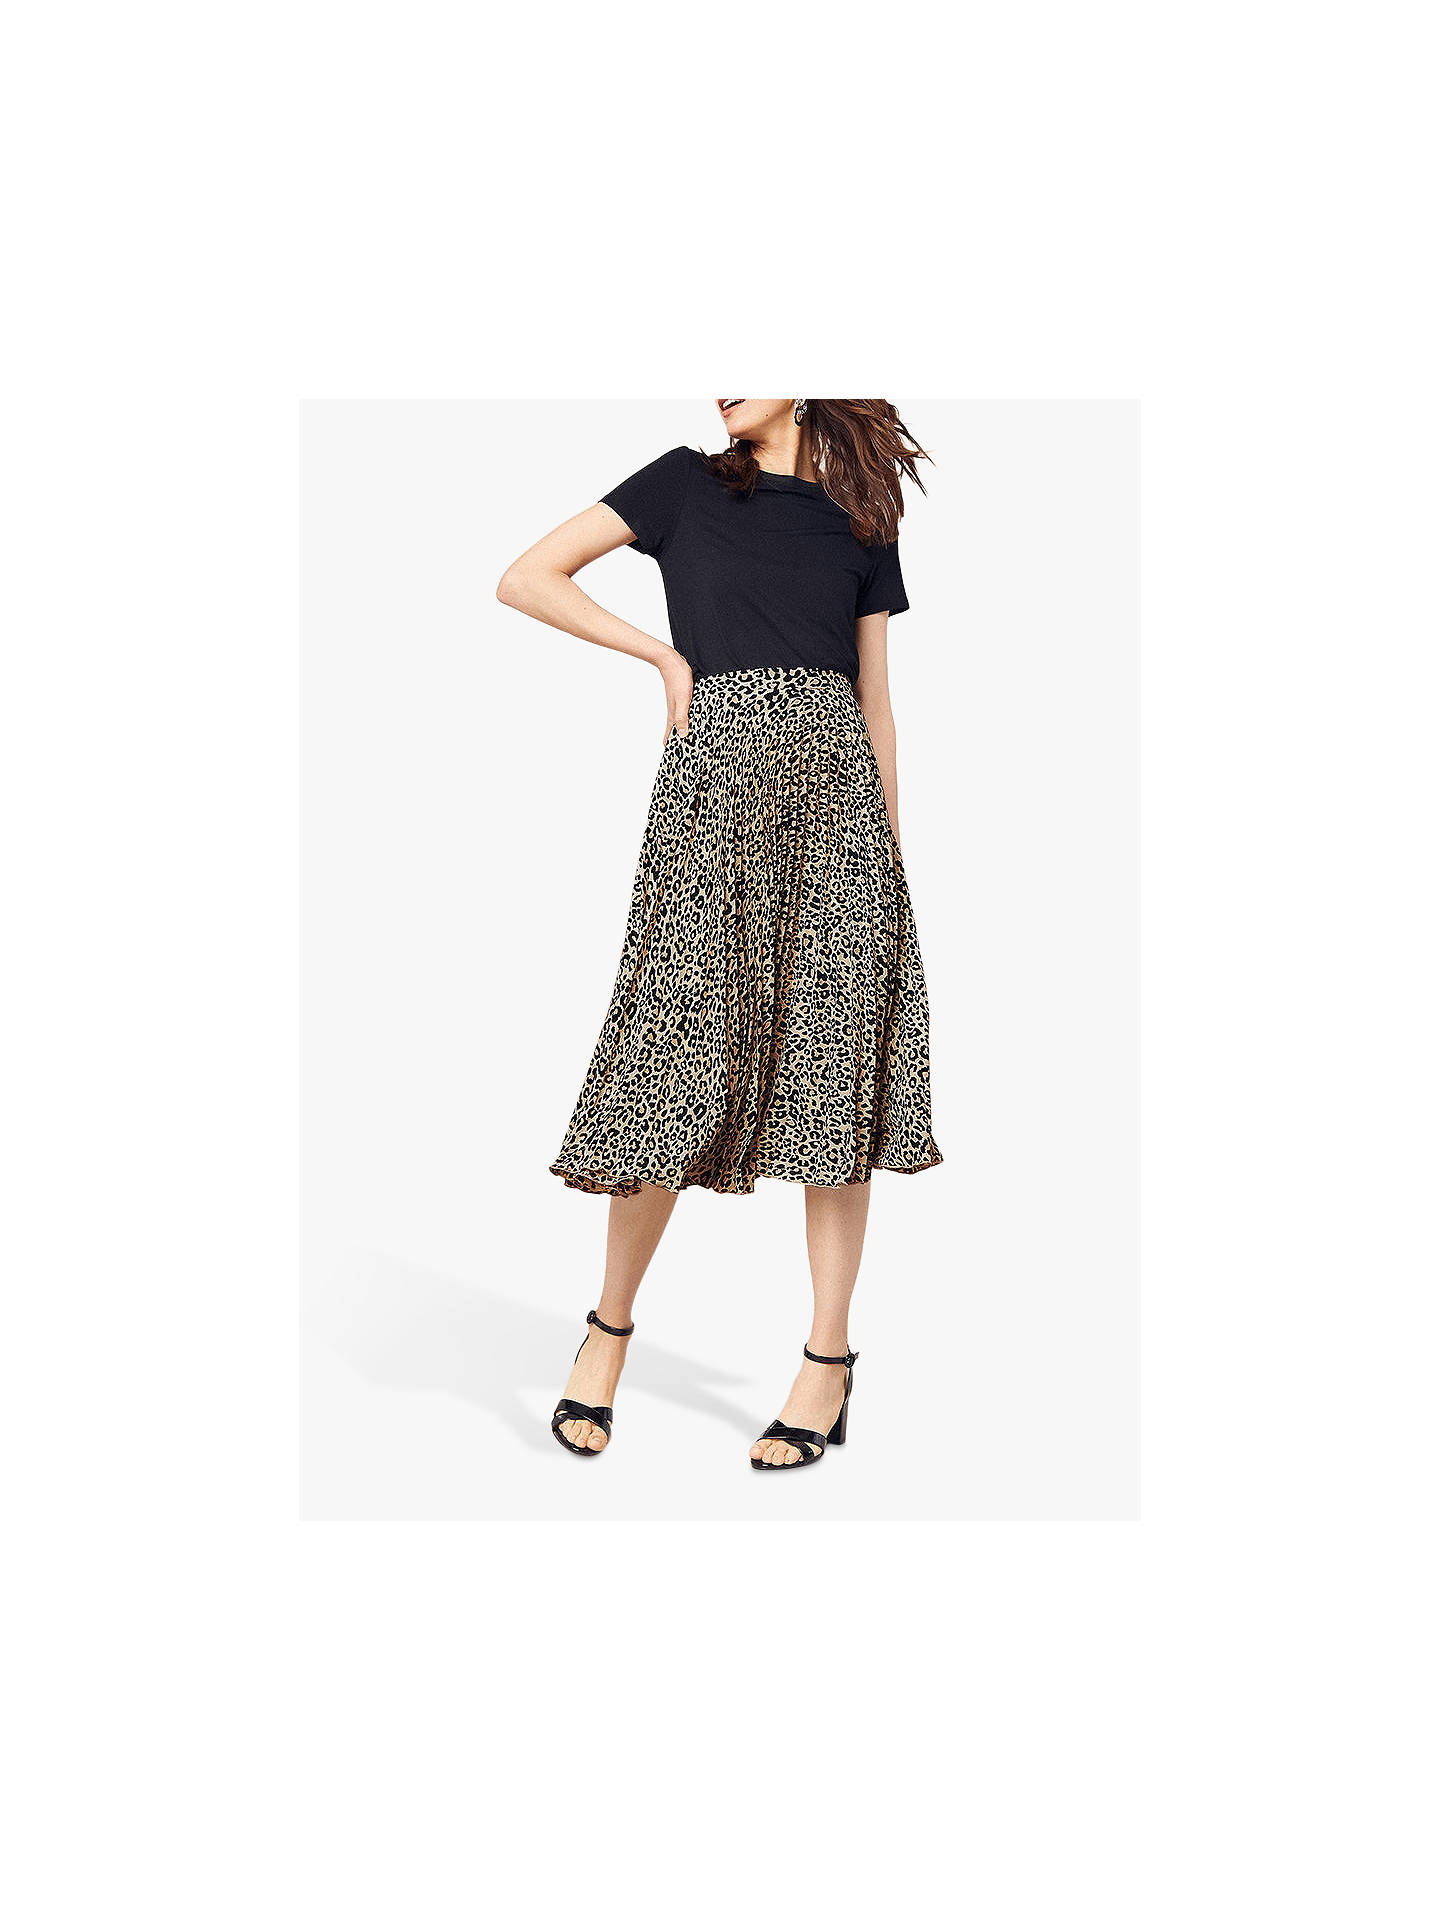 4a232ba8b994 ... Buy Oasis Animal Print Pleat Skirt, Multi, 8 Online at johnlewis.com ...